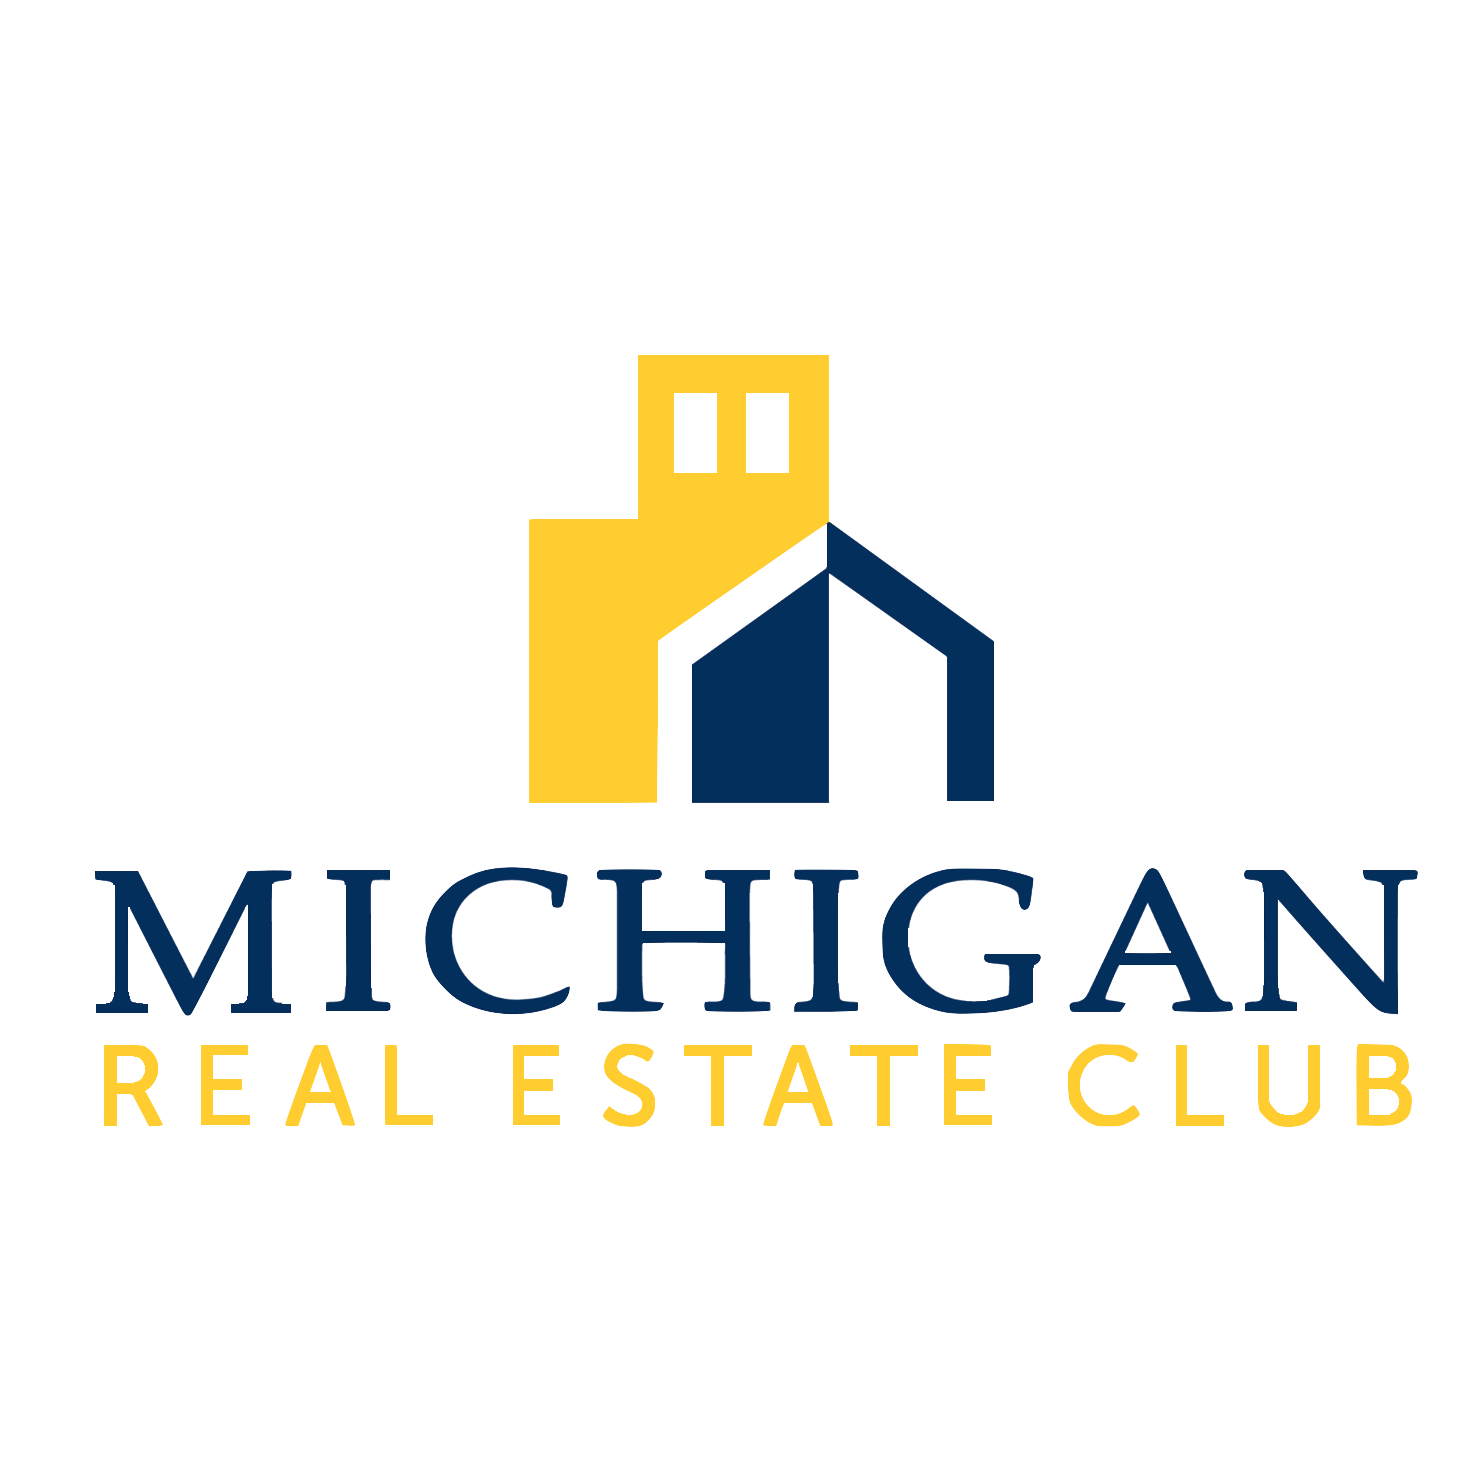 Michigan Real Estate Club